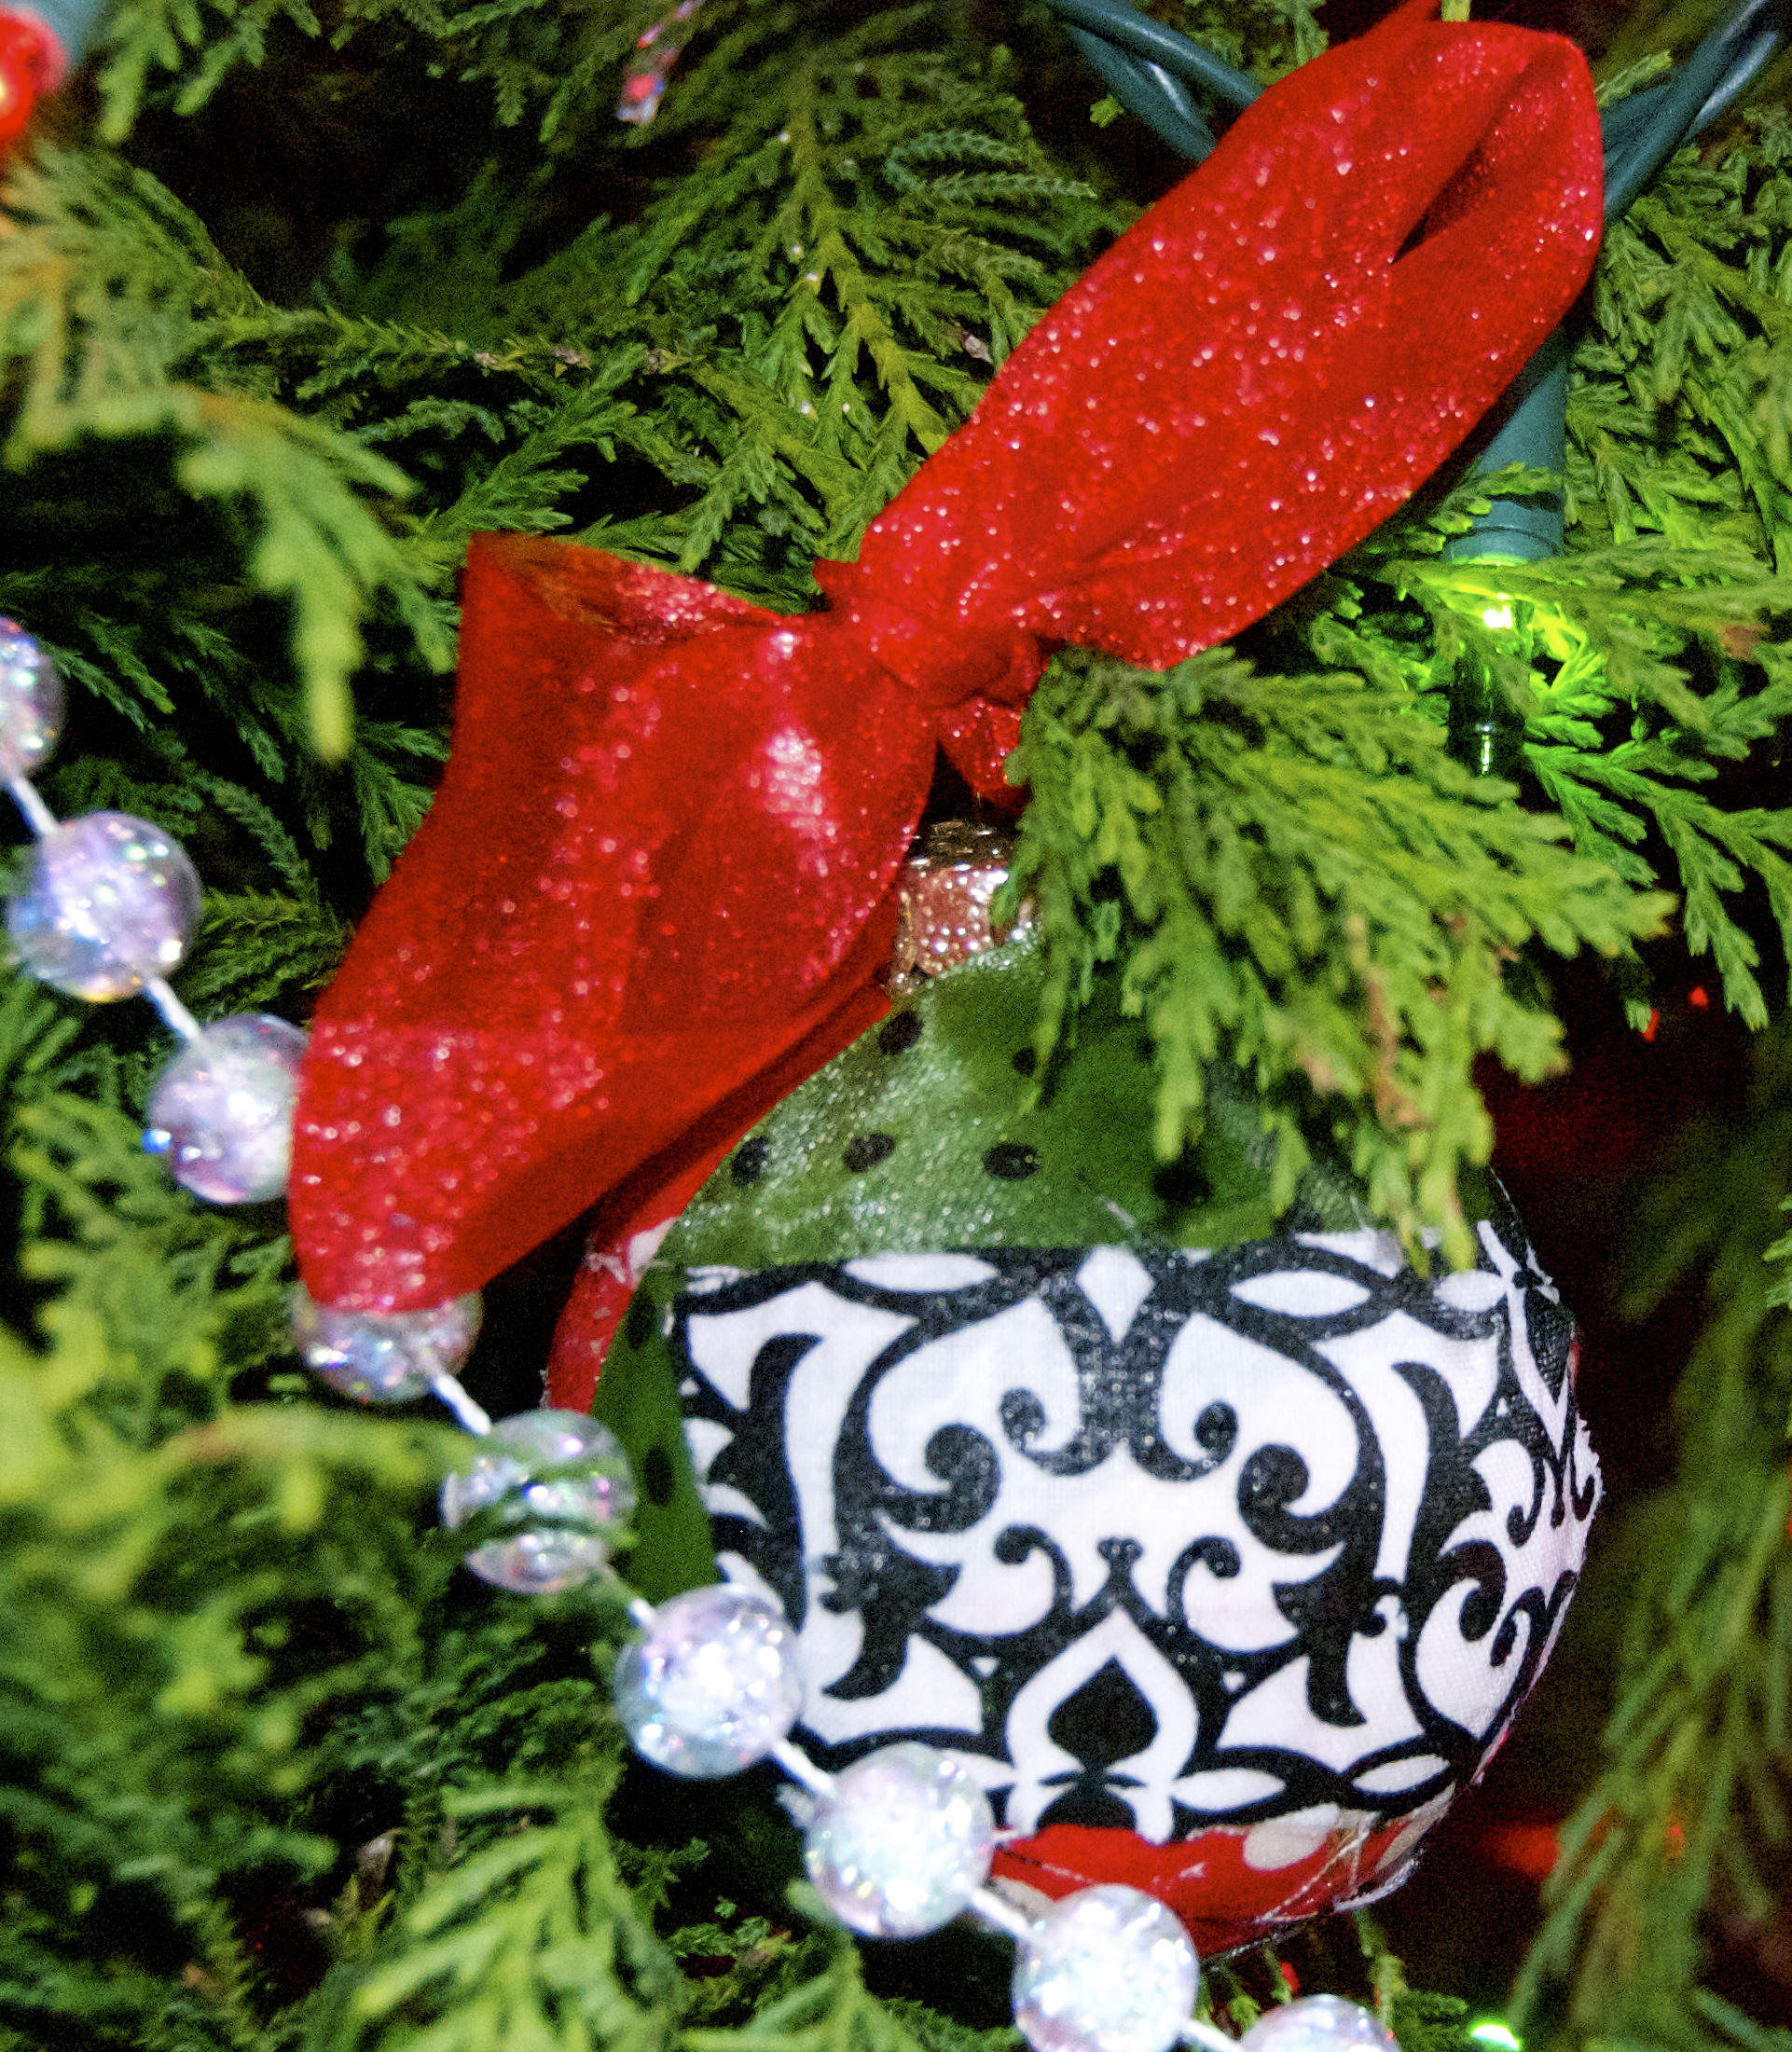 Diy christmas ornaments mommy in bonlee i made a couple of ornaments myself by mod podging strips of fabric to a glass solutioingenieria Choice Image